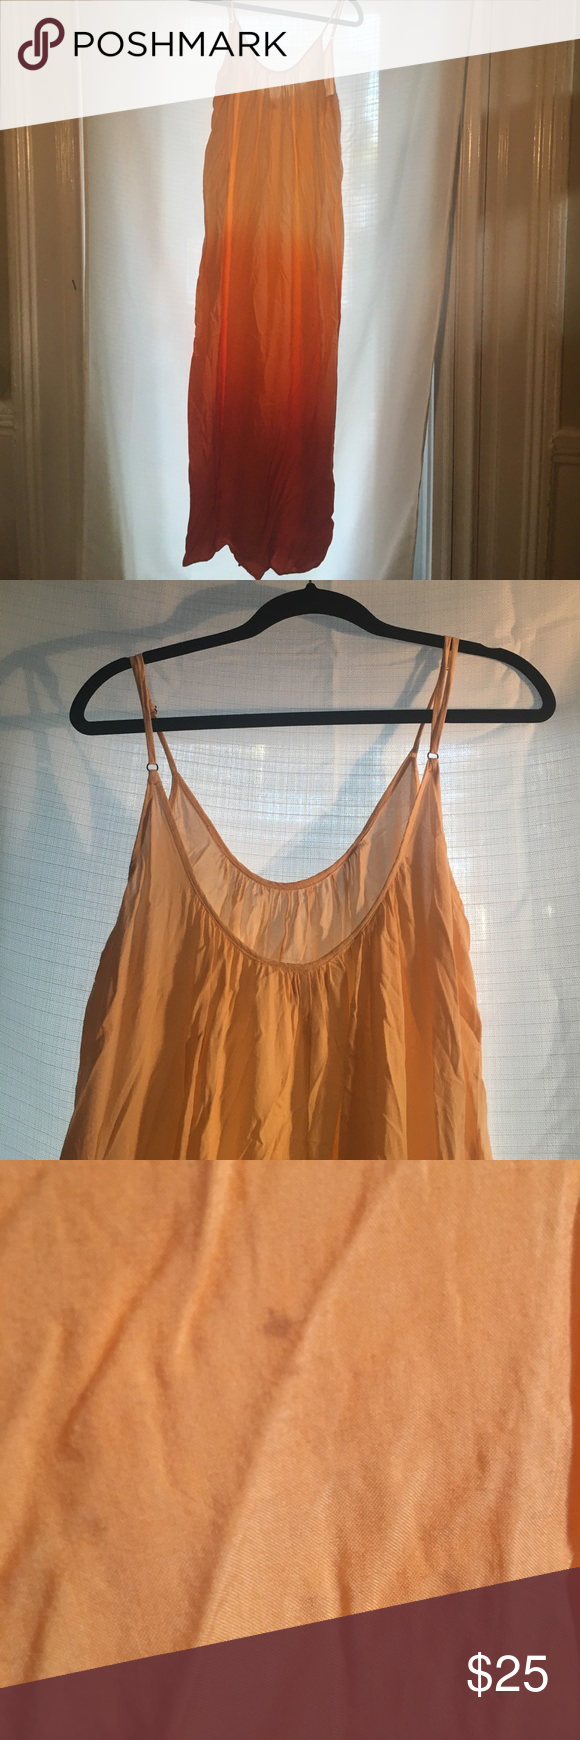 Tobi Tie Dye Low Back Maxi Dress Perfect for your stroll through your local Saturday farmers market! Orange ombré Maxi dress that fits like a flowy shift dress. Has been worn and has a very small stain that is shown in picture. ❤️Offers Welcome ❤️ Tobi Dresses Maxi